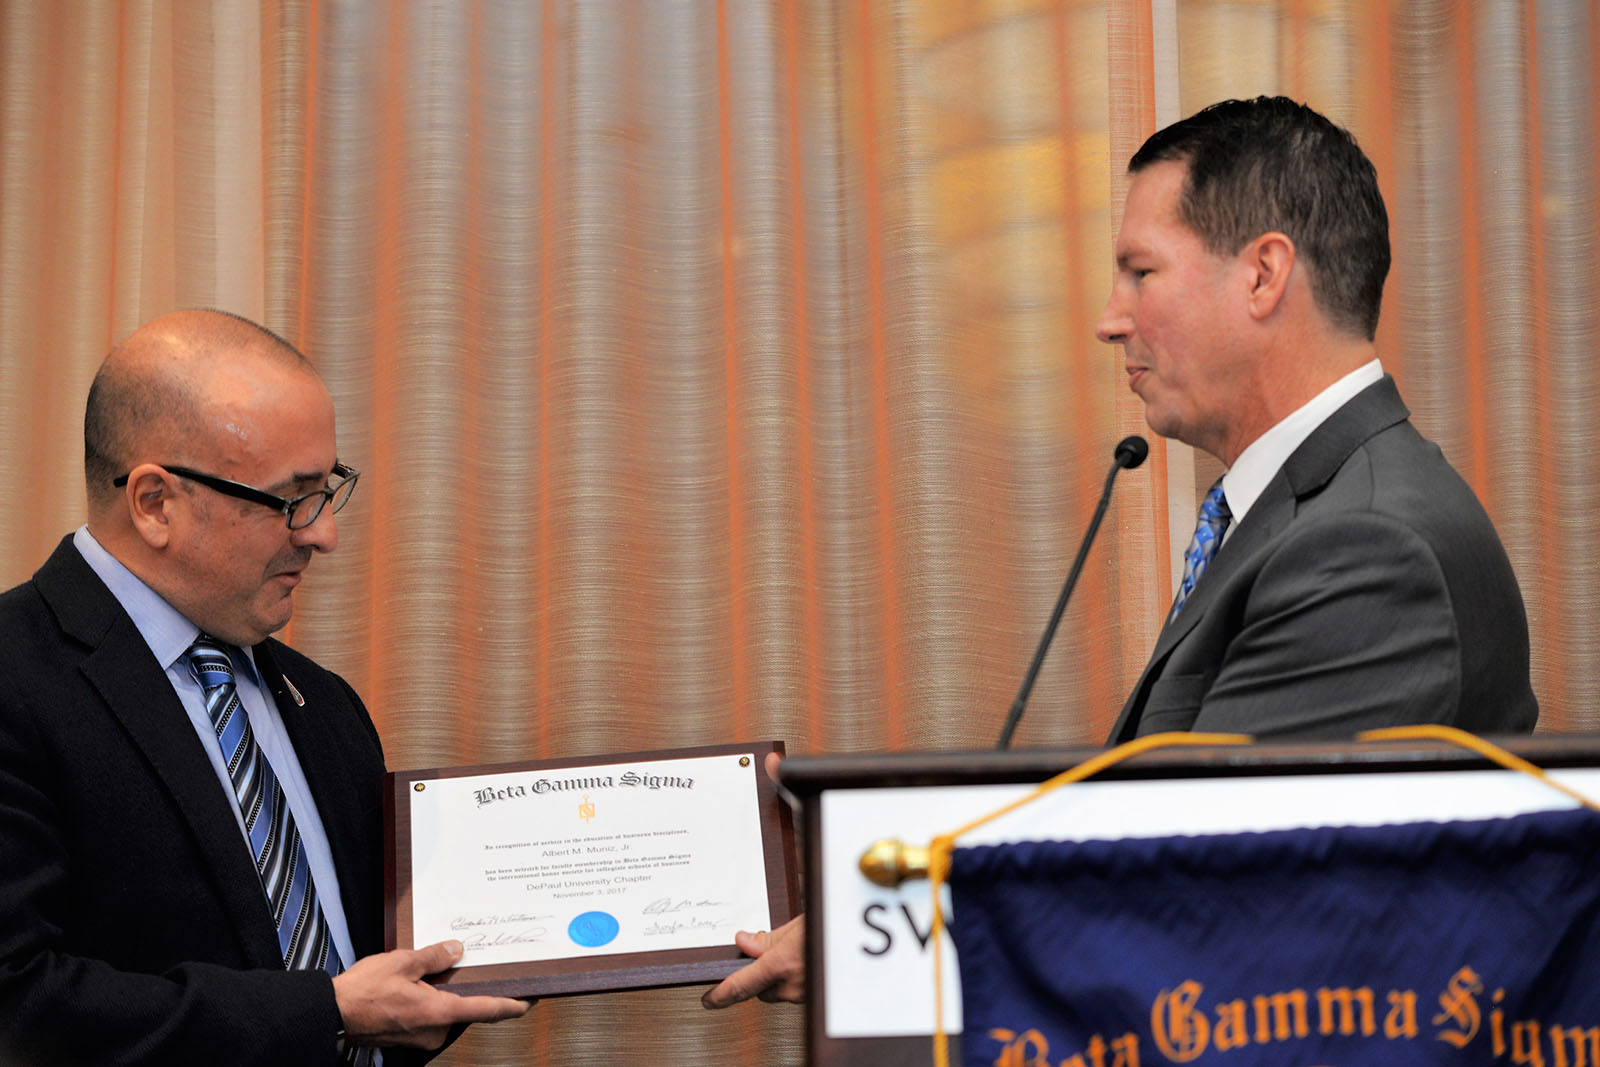 Marketing Associate Professor Rich Rocco hands award to marketing professor Al Muniz at Beta Gamma Sigma induction dinner and ceremony